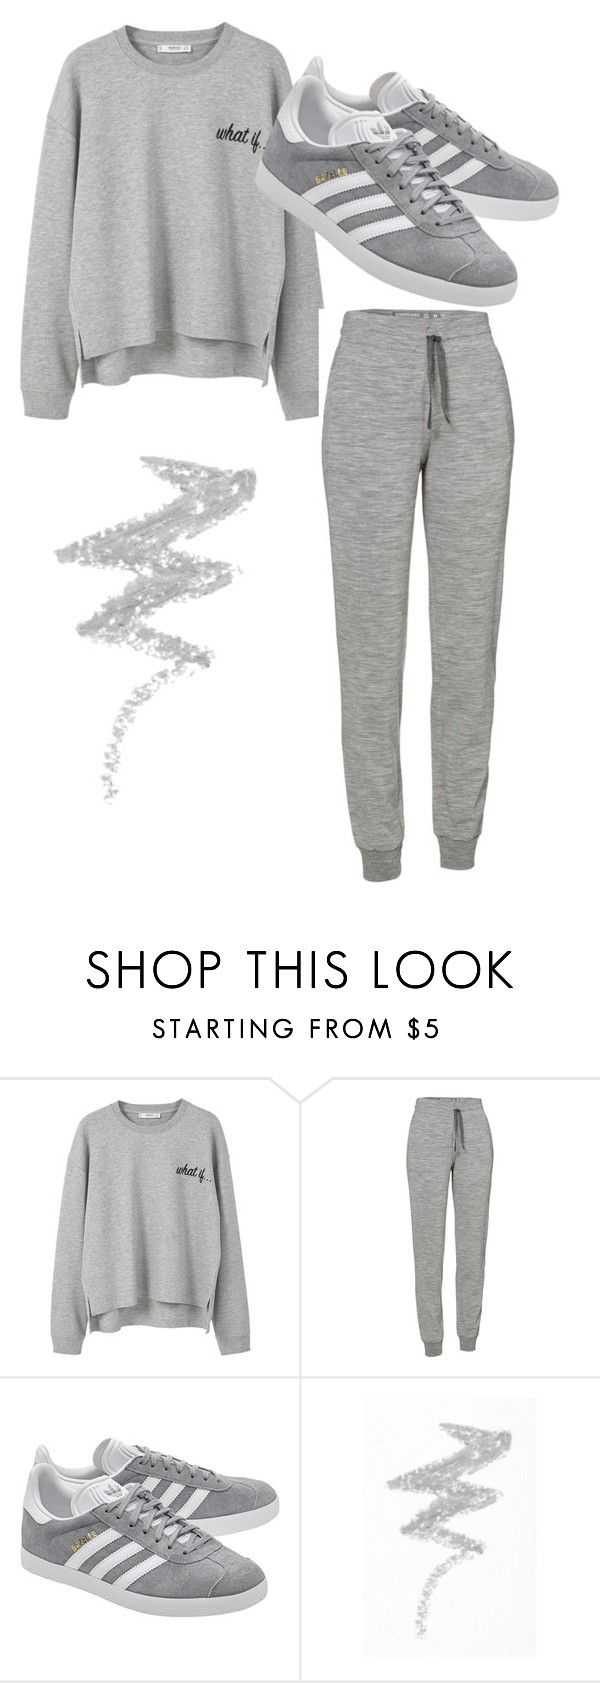 """""""Grey"""" by alis-m ❤ liked on Polyvore featuring MANGO, Icebreaker, adidas Originals and NYX"""